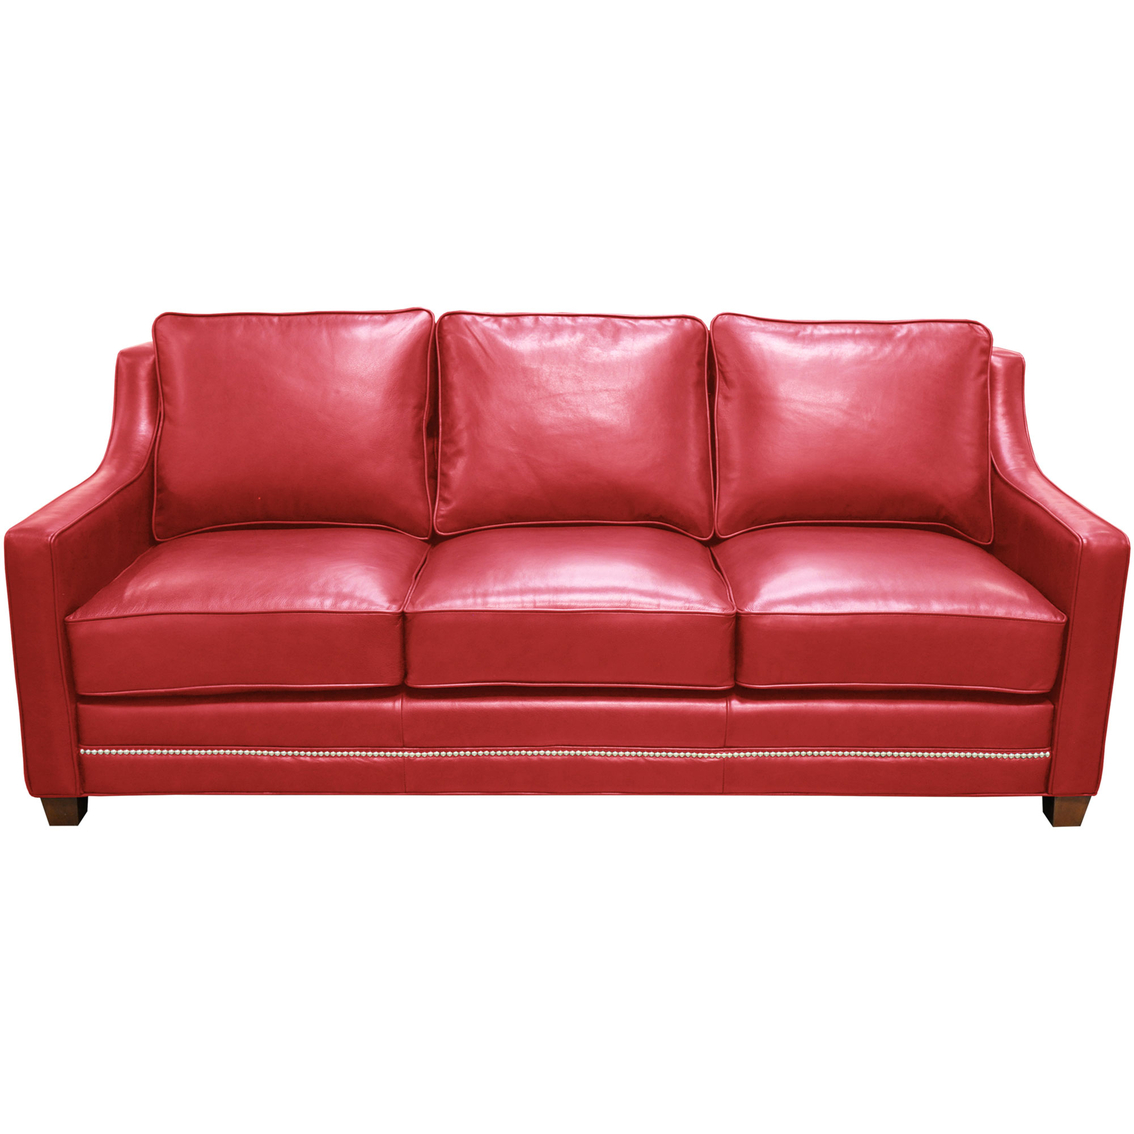 Omnia Leather Fifth Avenue Sofa Sofas amp Couches Home